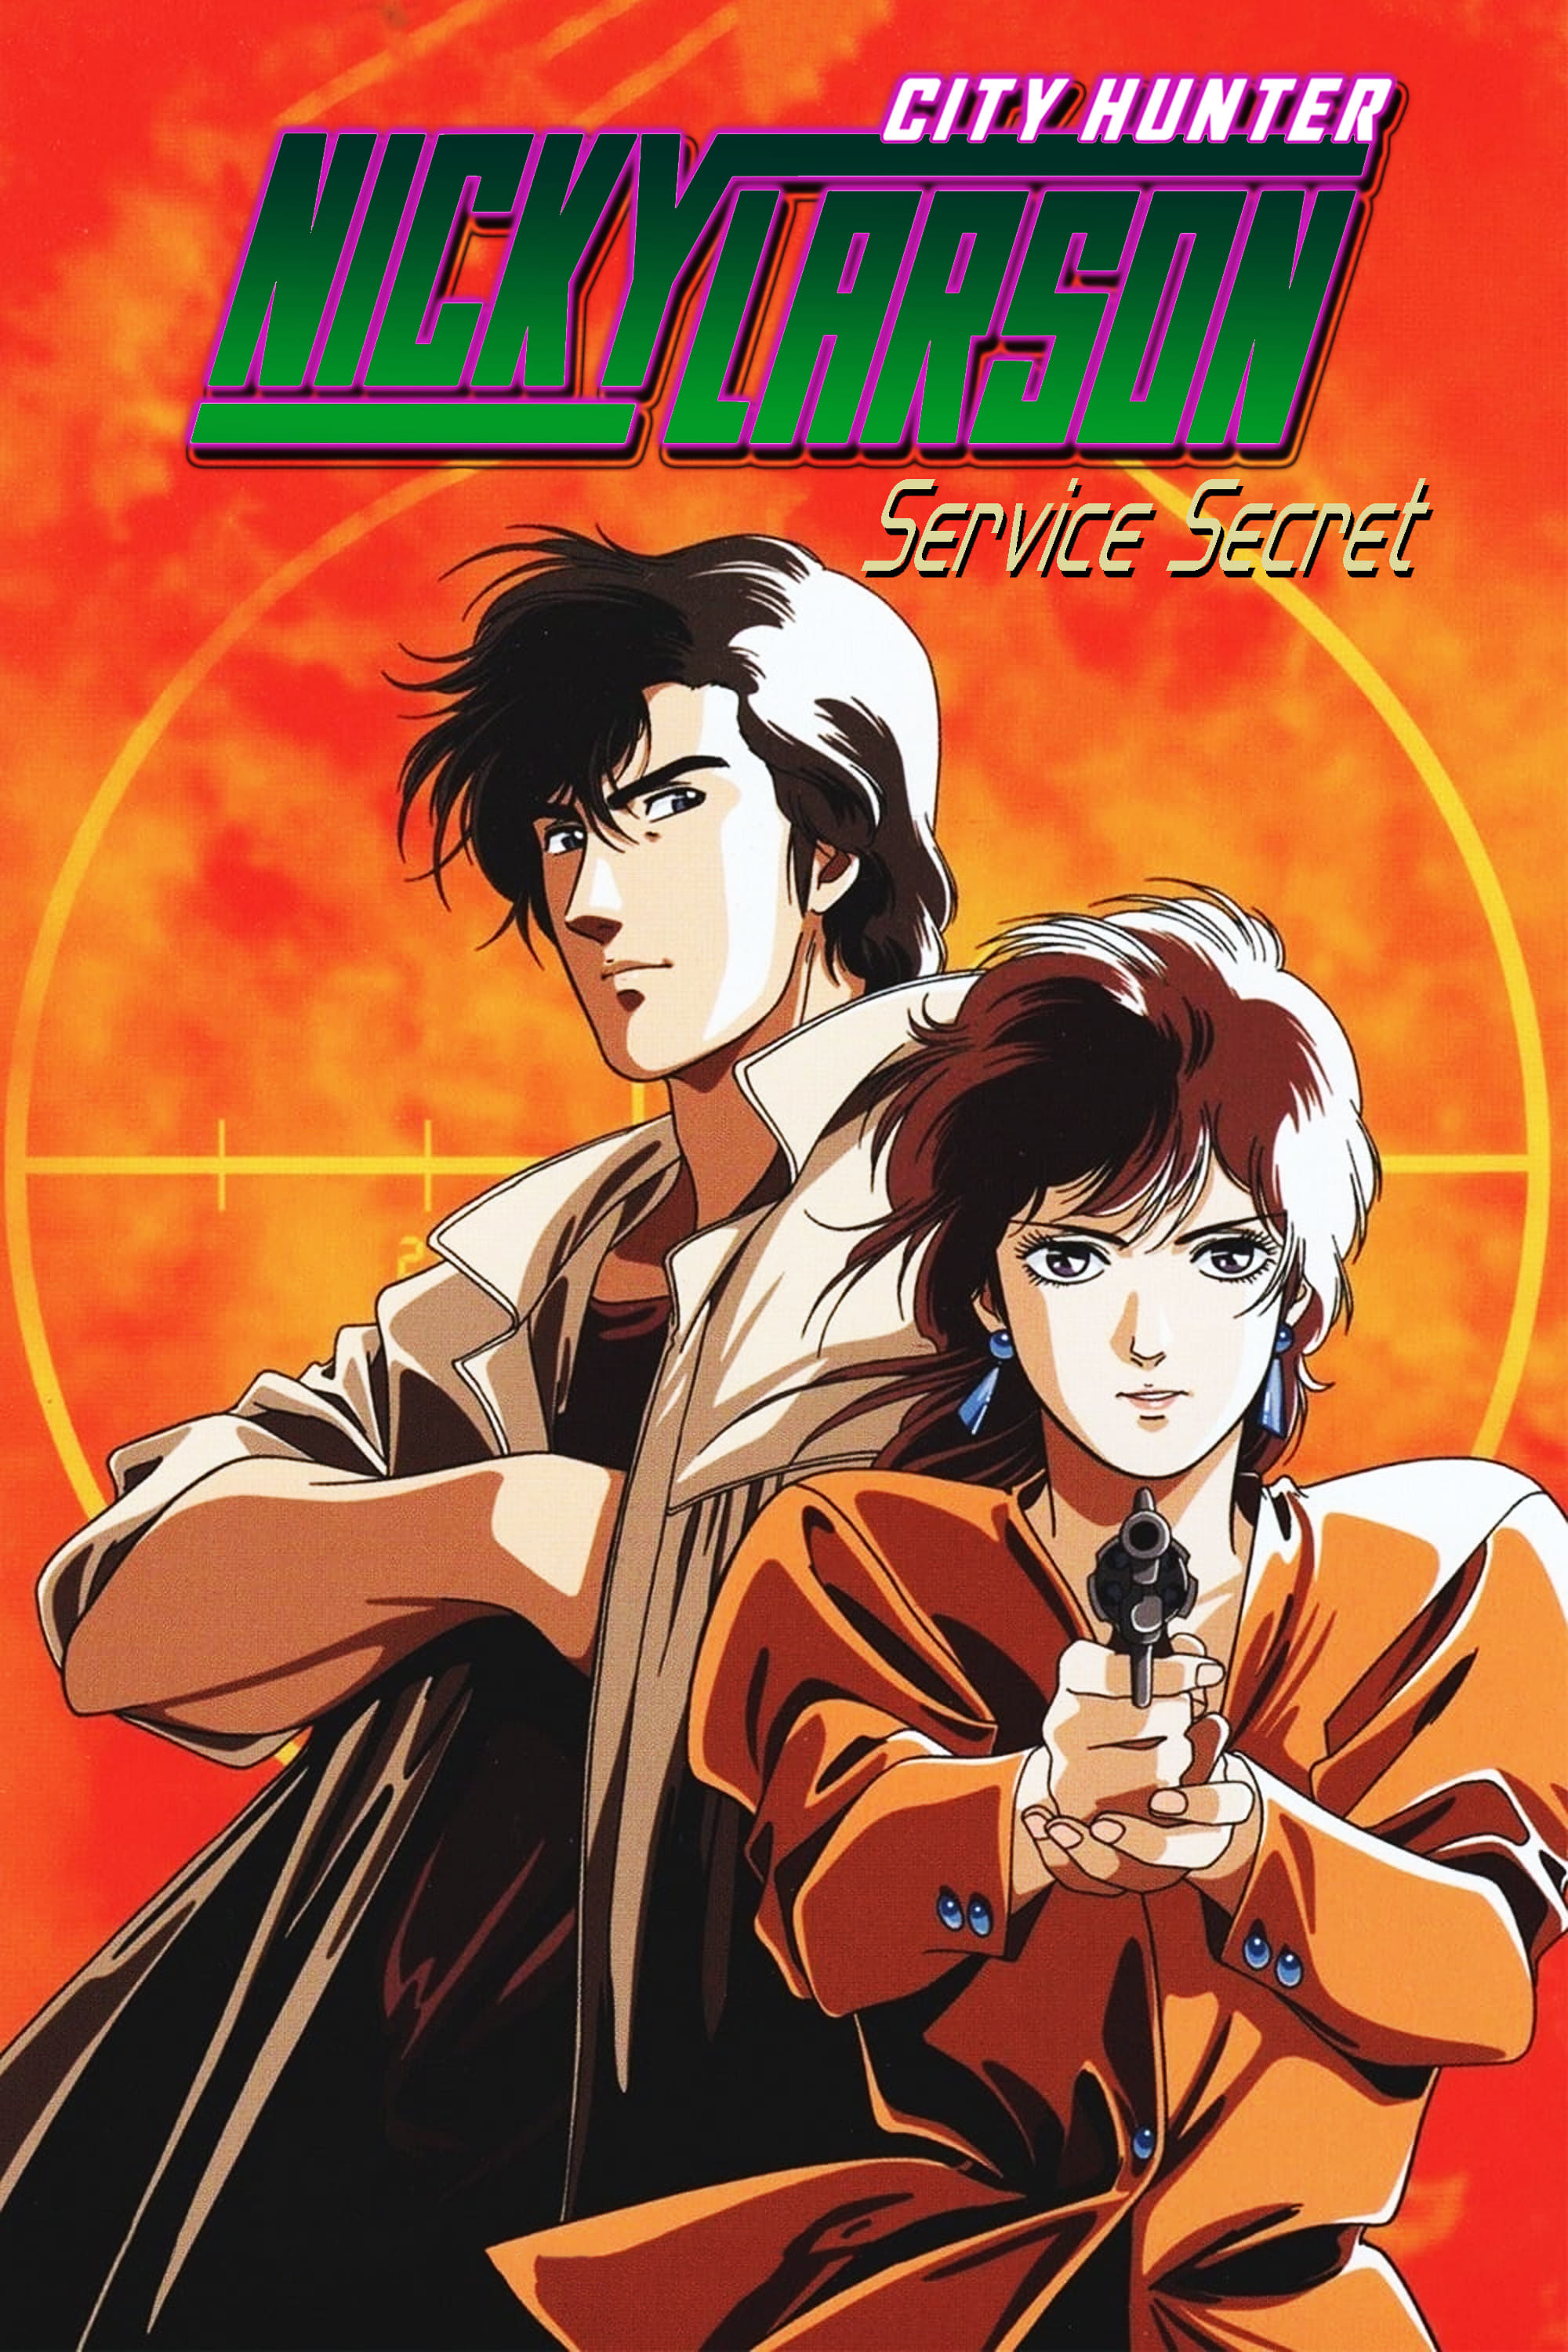 City Hunter Special: The Secret Service (1996)